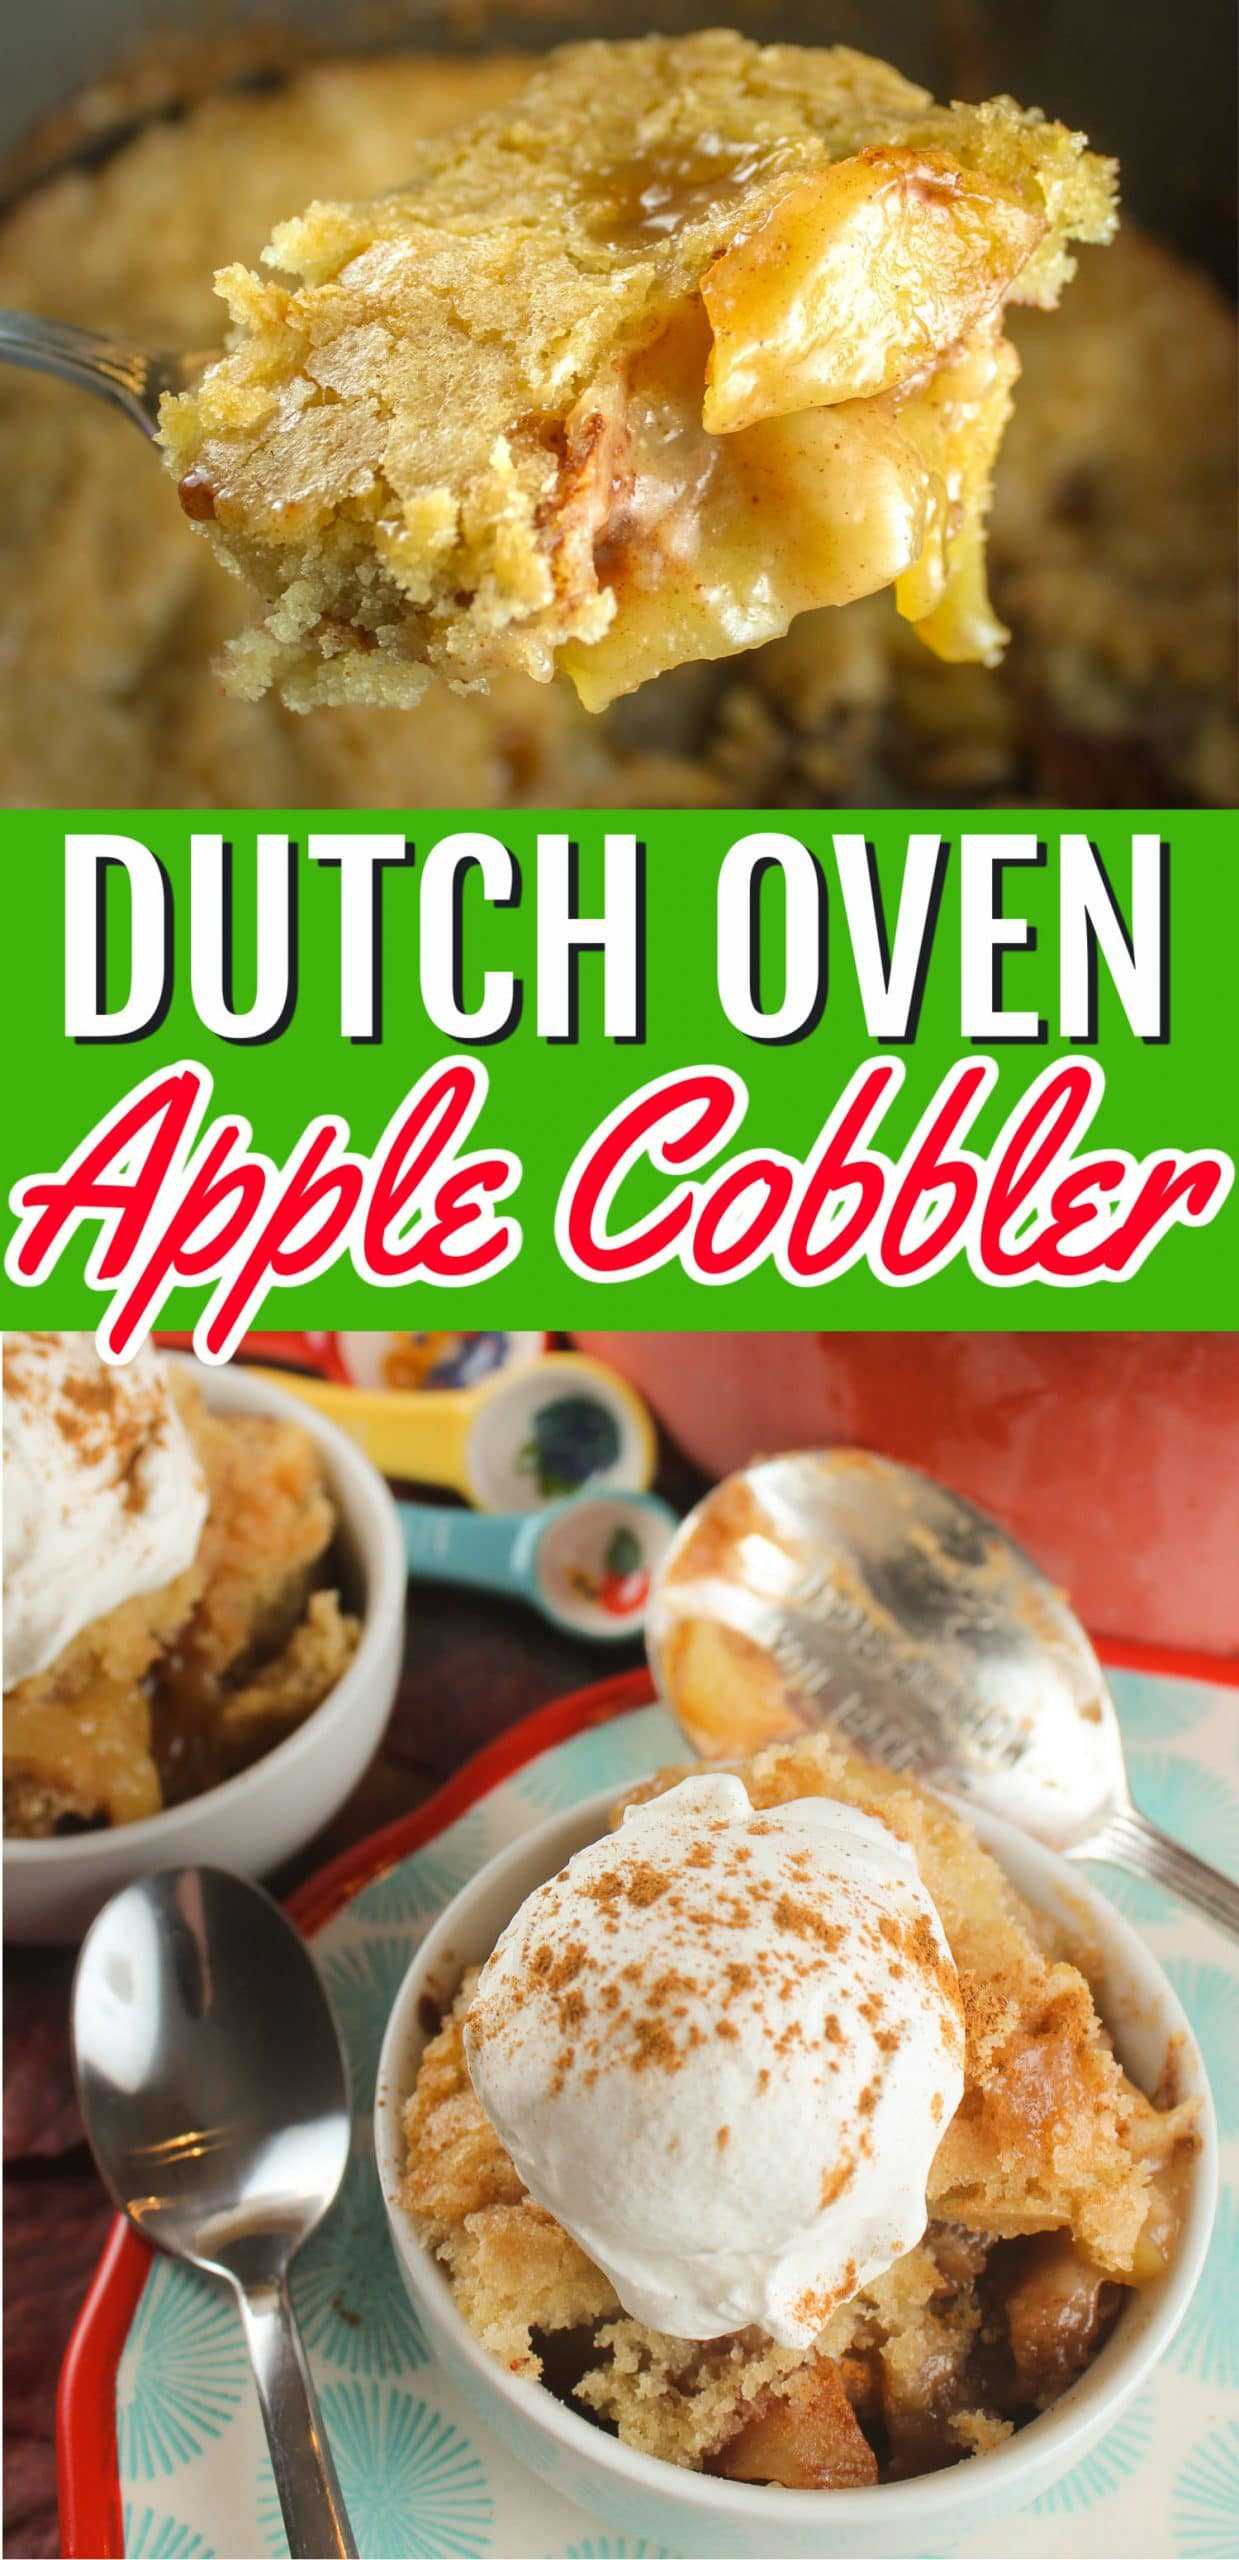 Dutch Oven Apple Cobbler is a tasty, warm and comforting dessert that goes together in ten minutes. Mine has a delicious sugary crust that everyone will love!  via @foodhussy